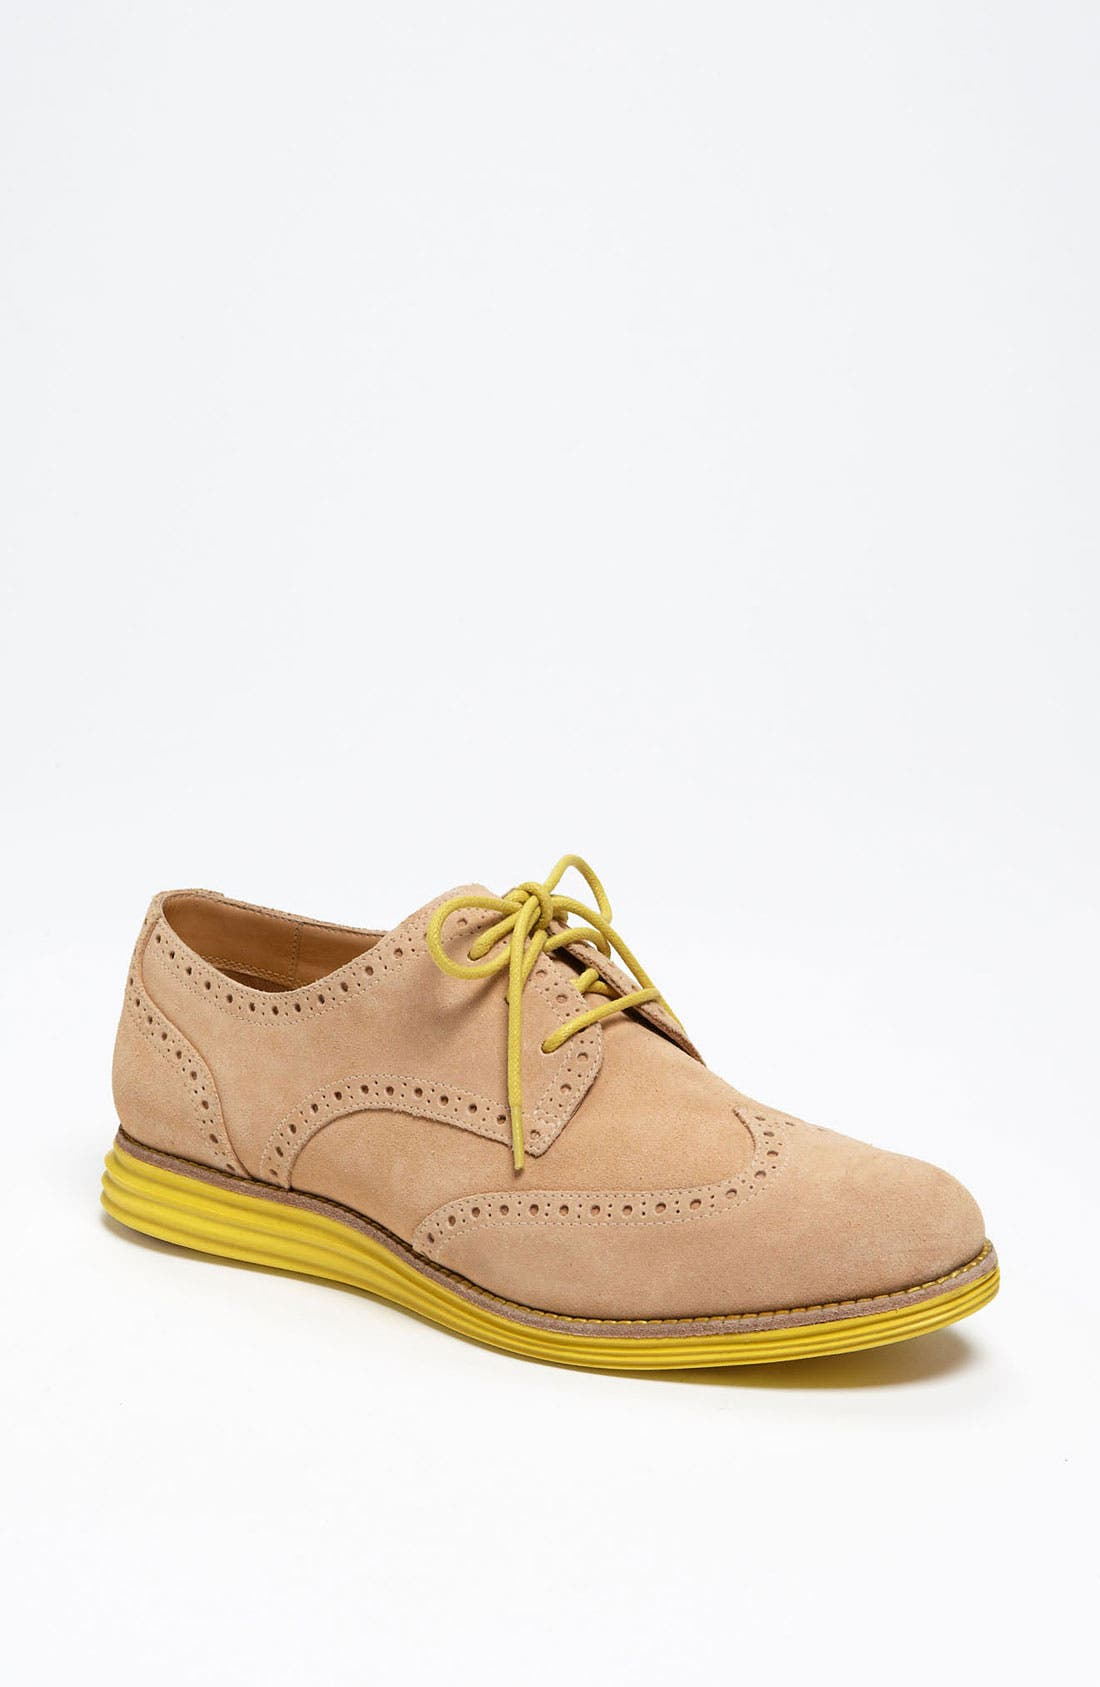 Main Image - Cole Haan 'LunarGrand' Wingtip Oxford (Women)